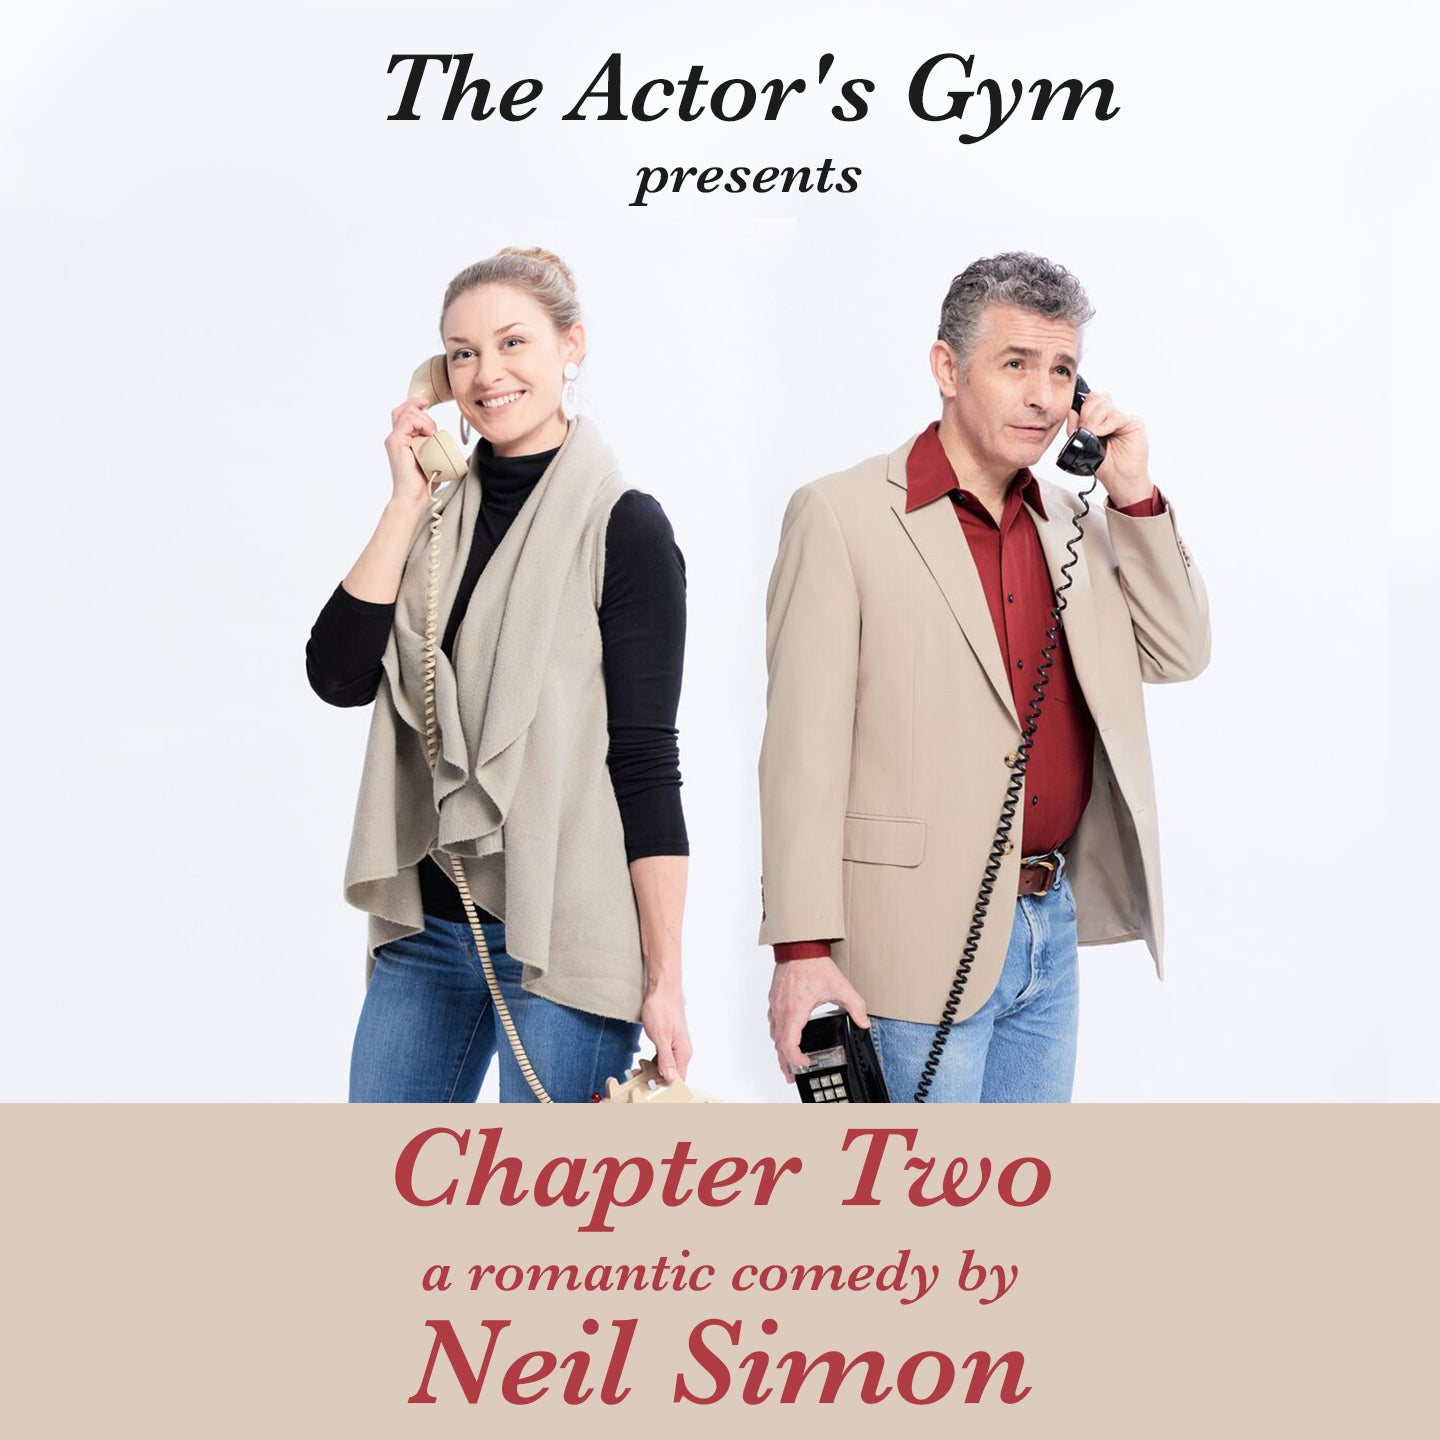 Neil Simon's Chapter Two